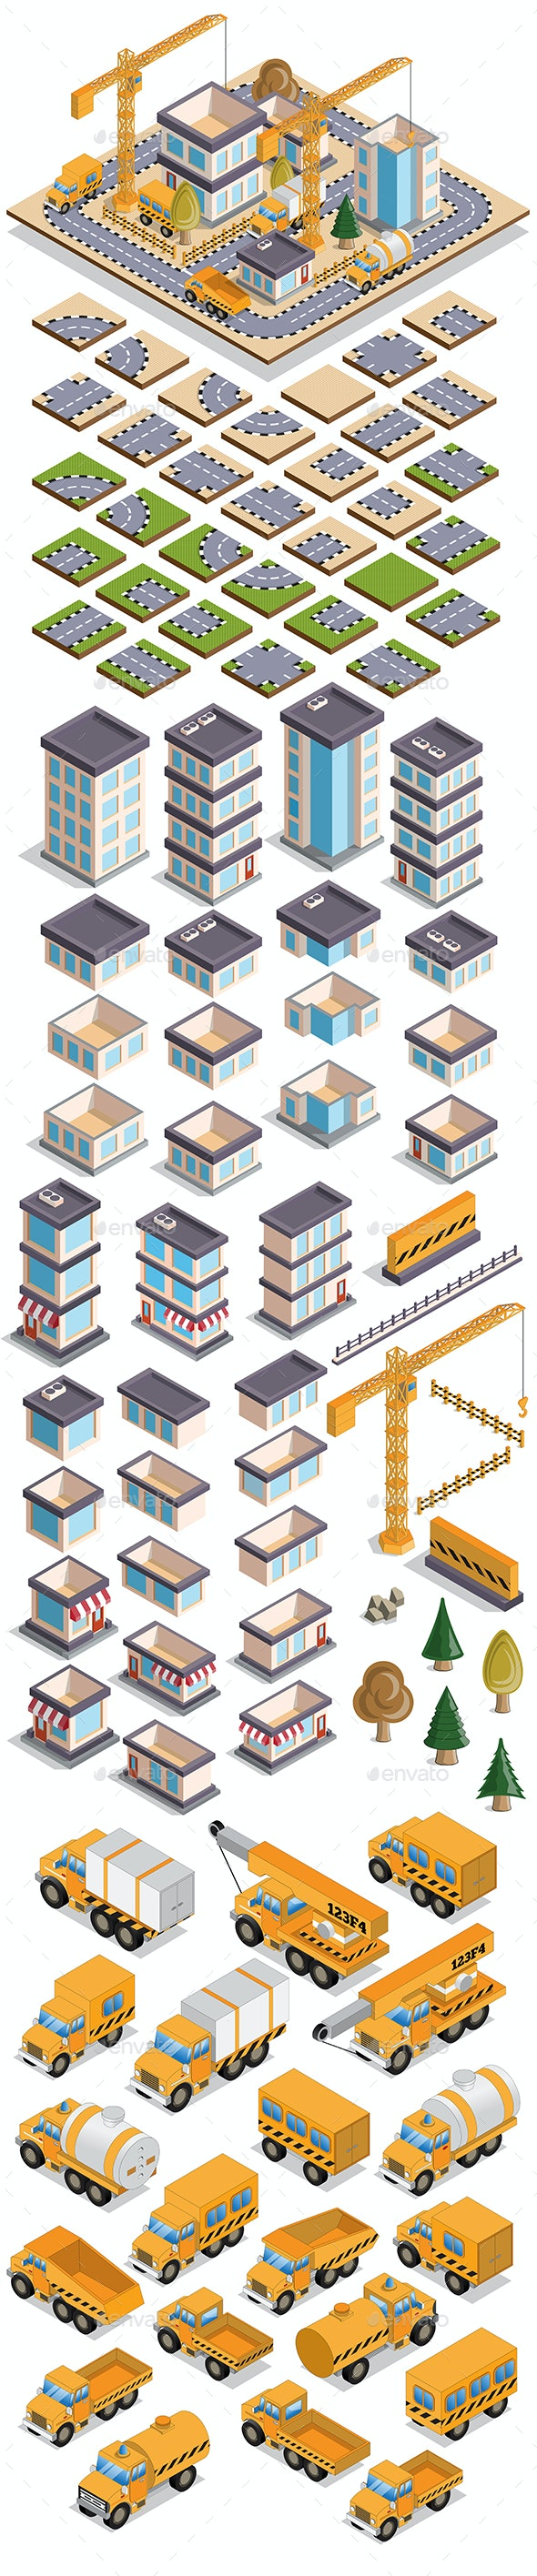 Set of Elements for Building Houses - Tilesets Game Assets